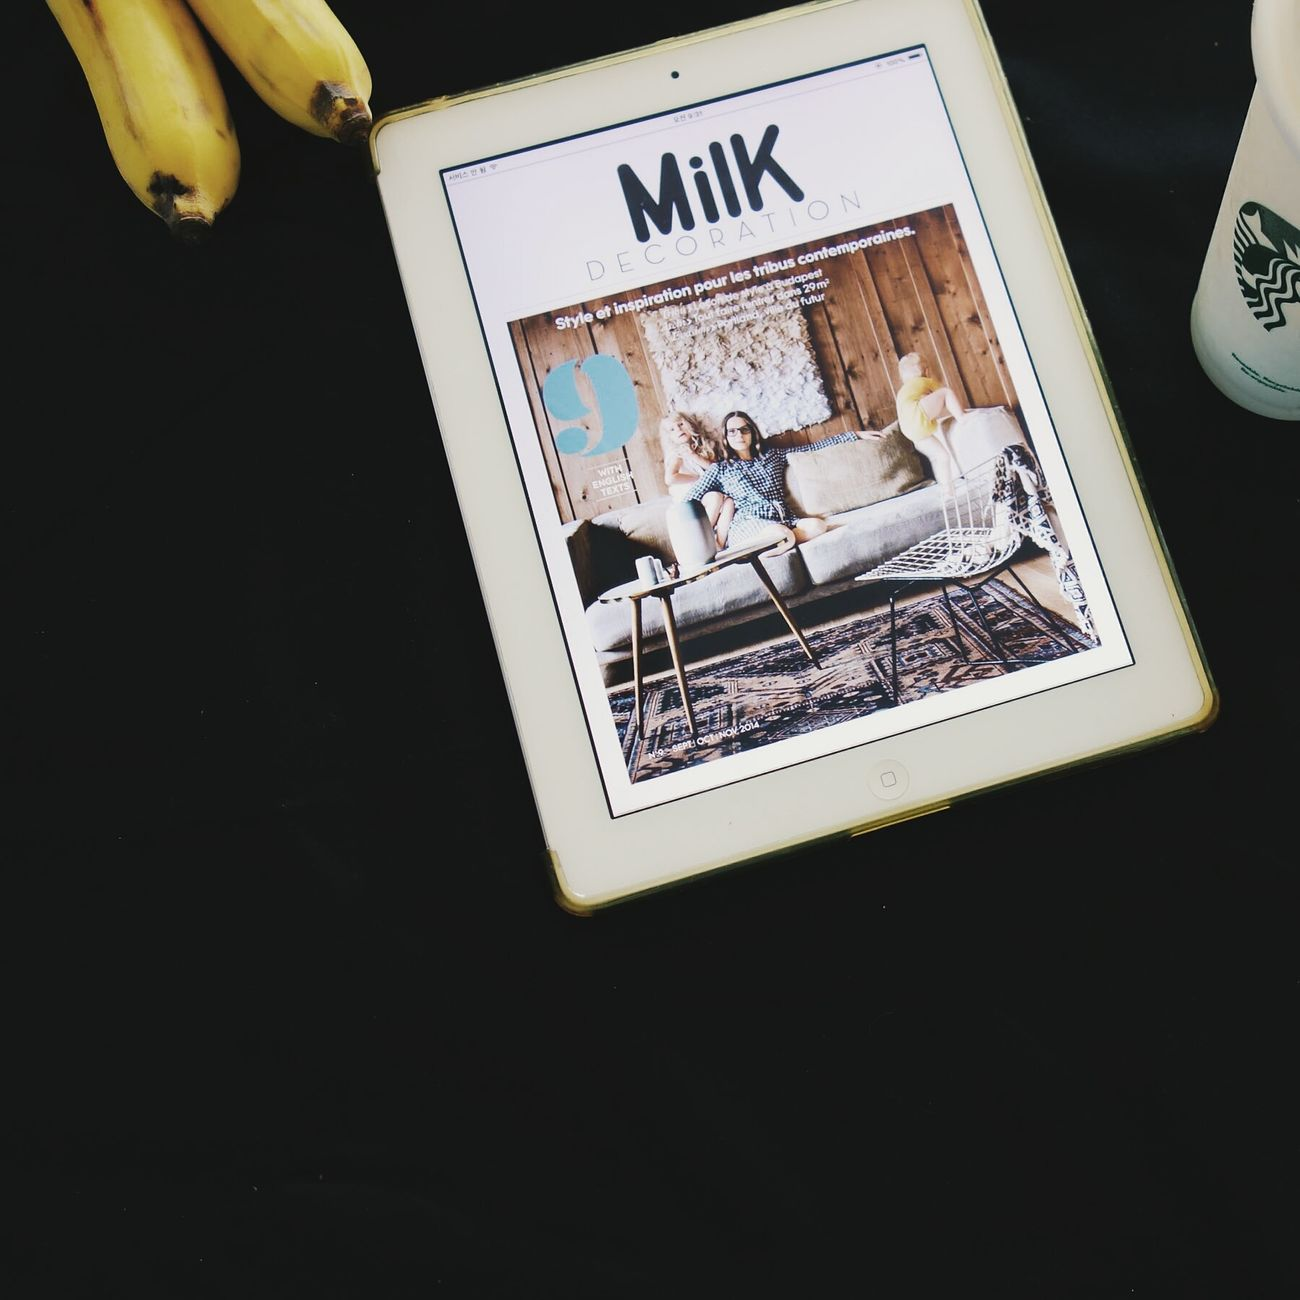 Three things this morning. Milkdecoration Ipad Coffee Digitalmagazine